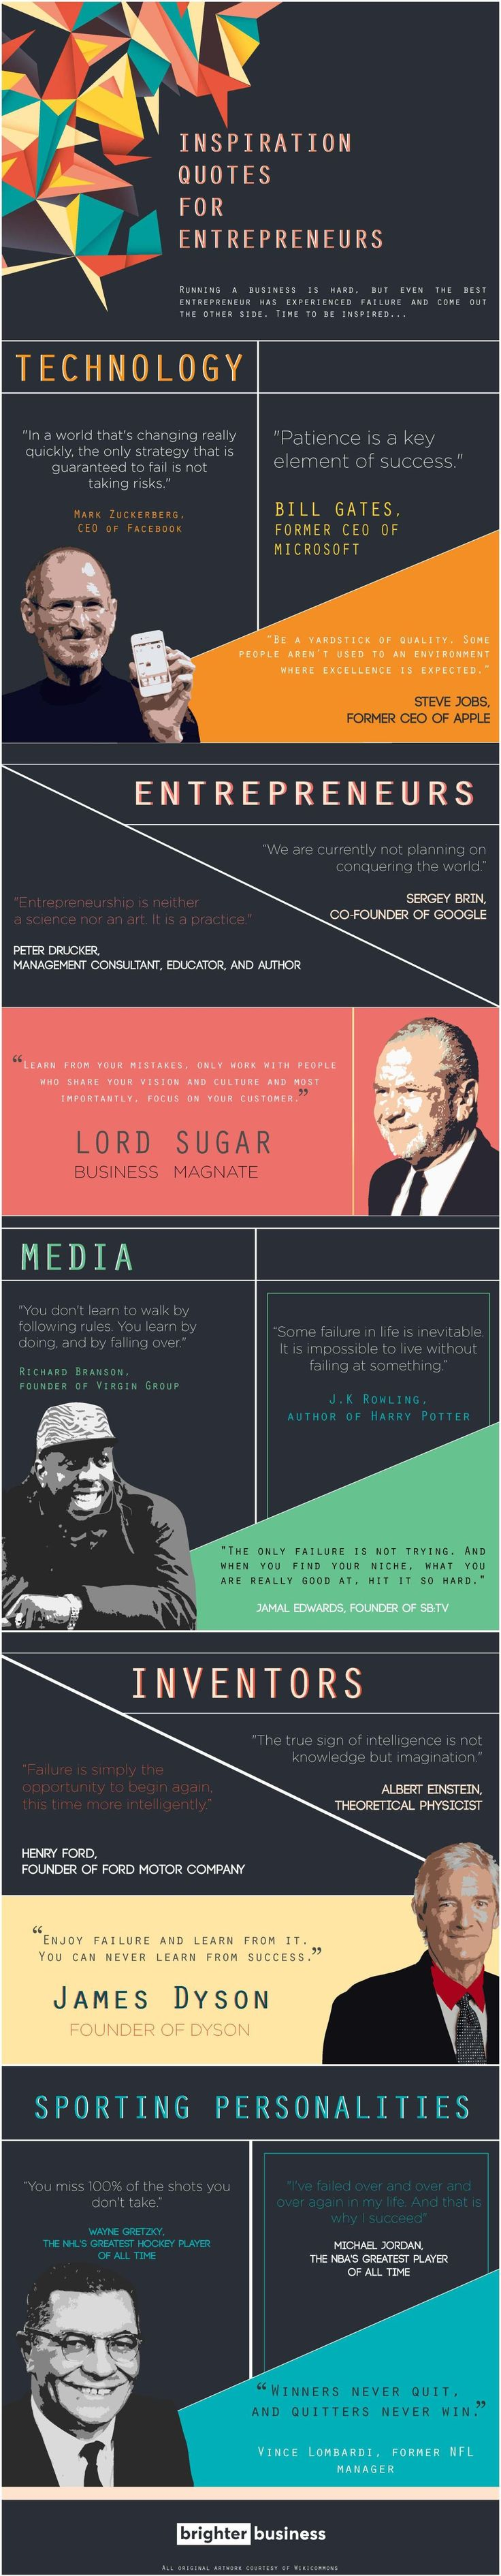 Inspiration Quotes For Entrepreneurs - #infographic